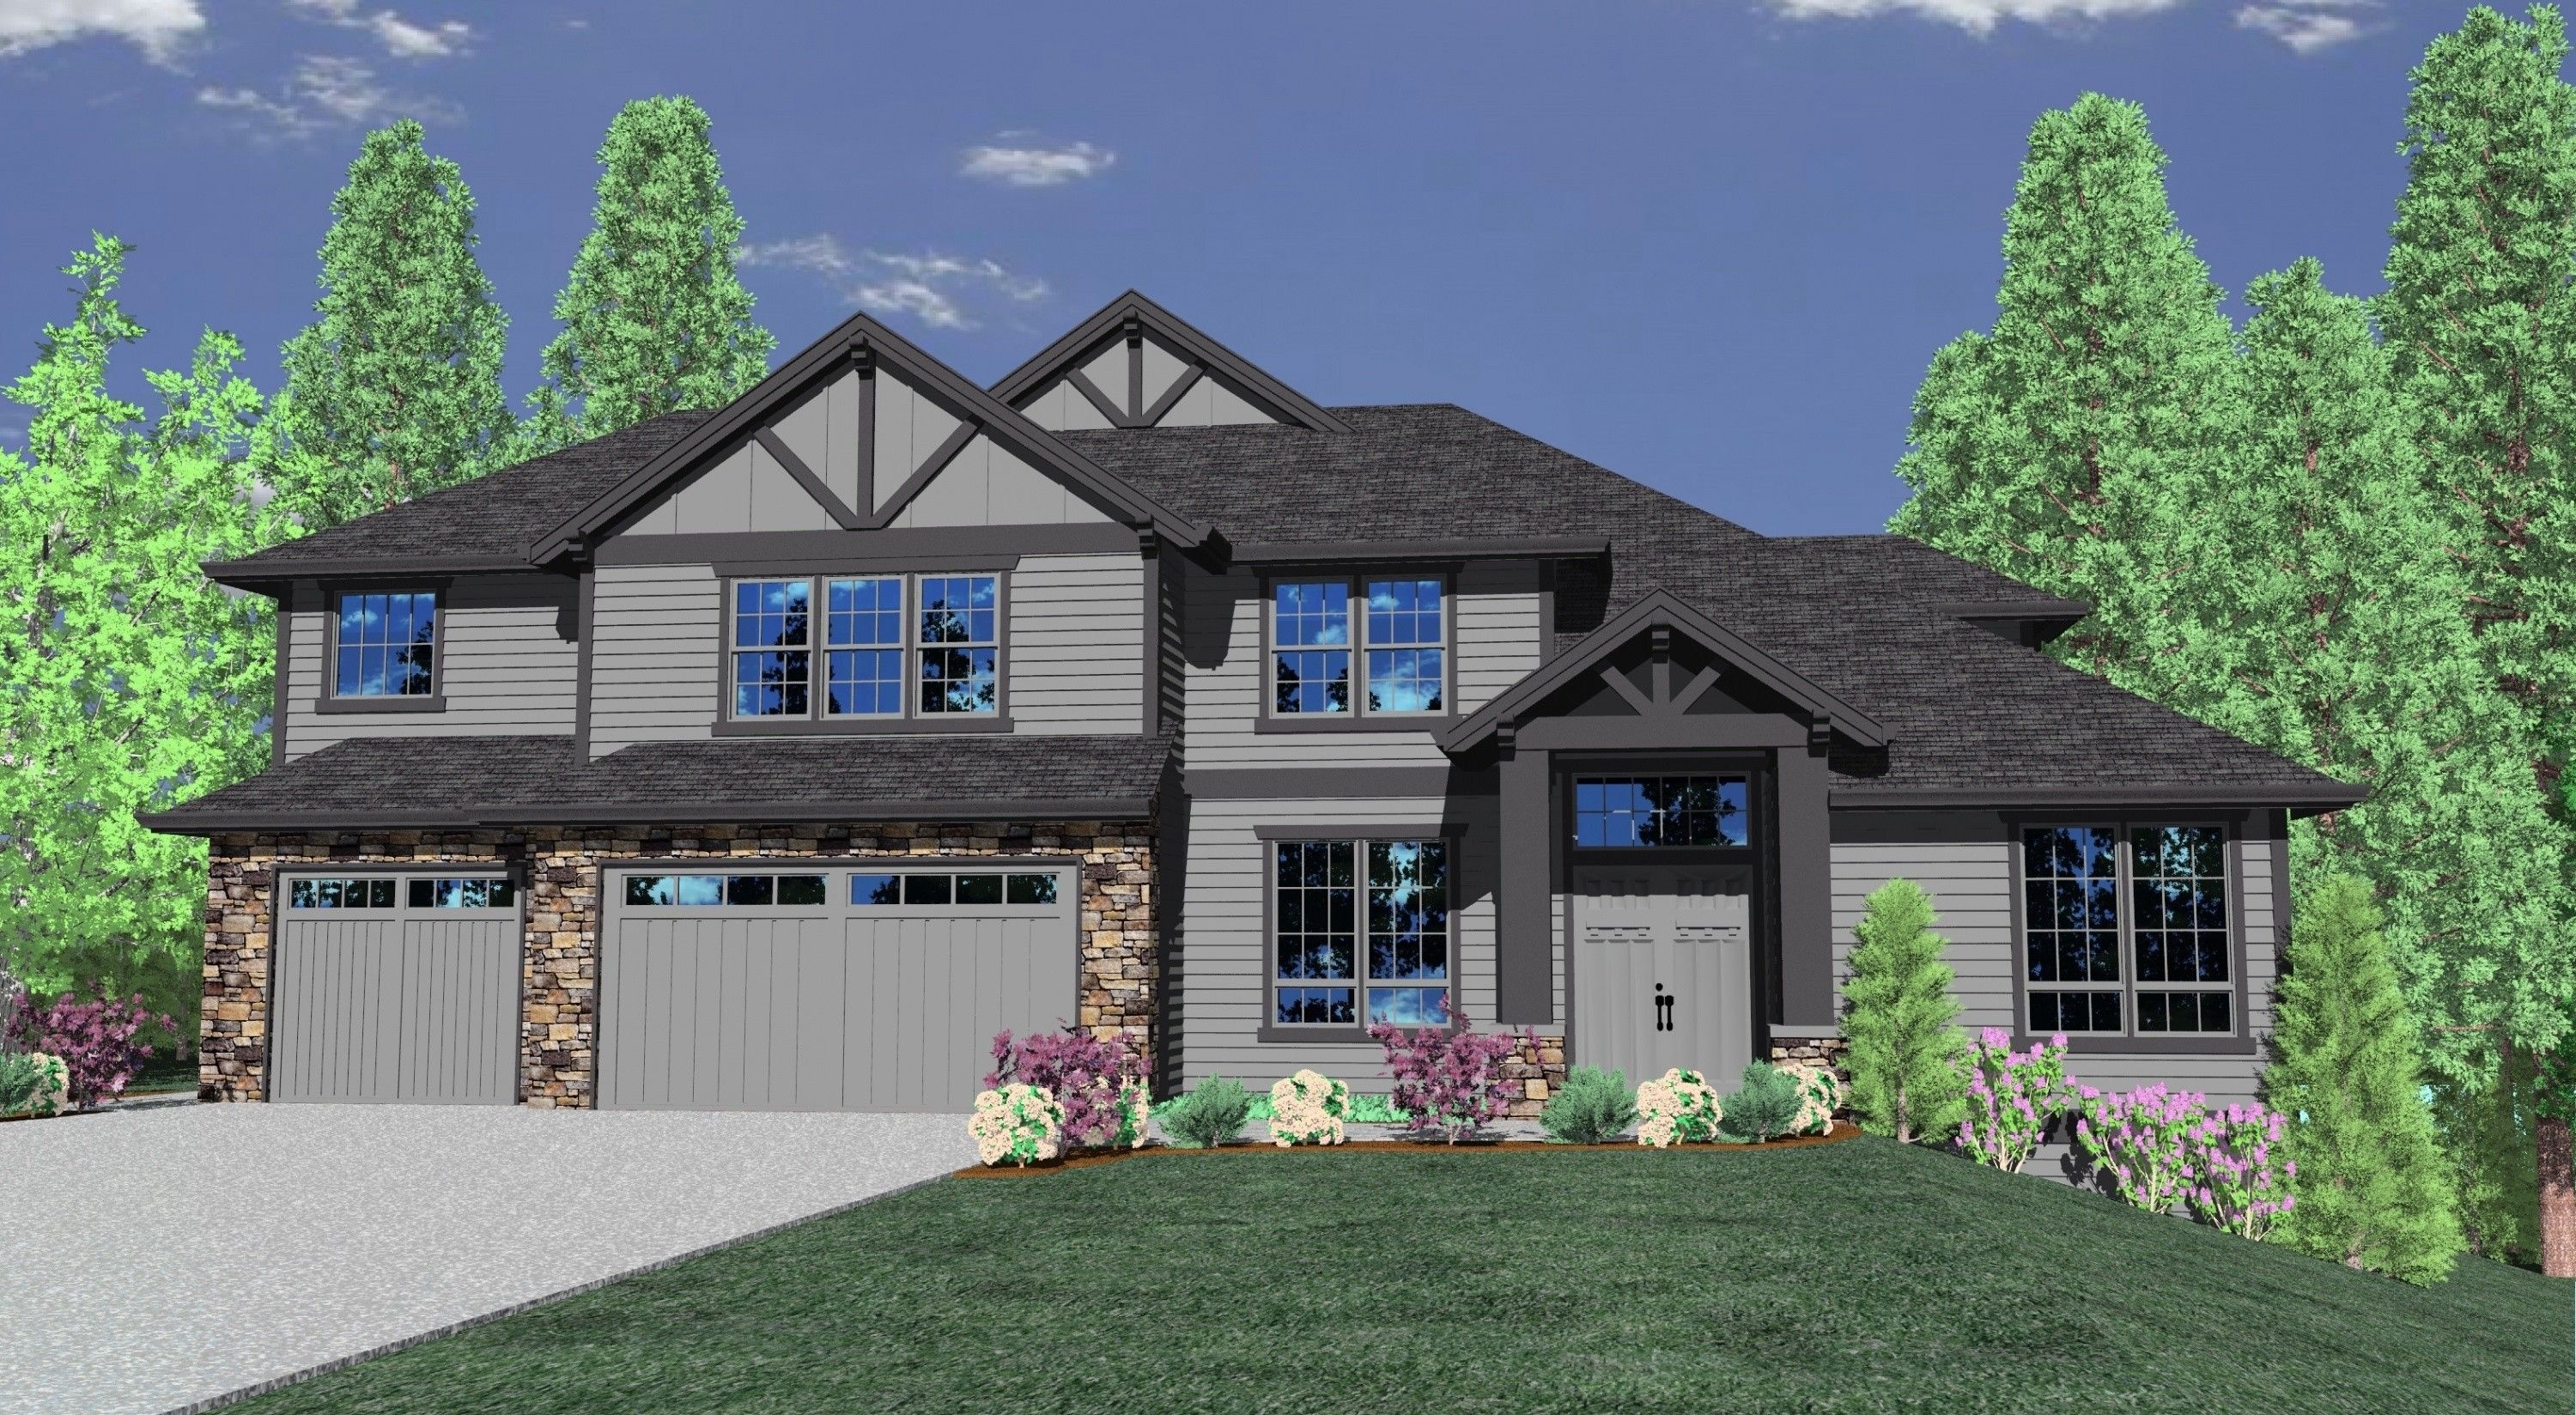 M 3876gfh house plan transitional house plans for Transitional home plans